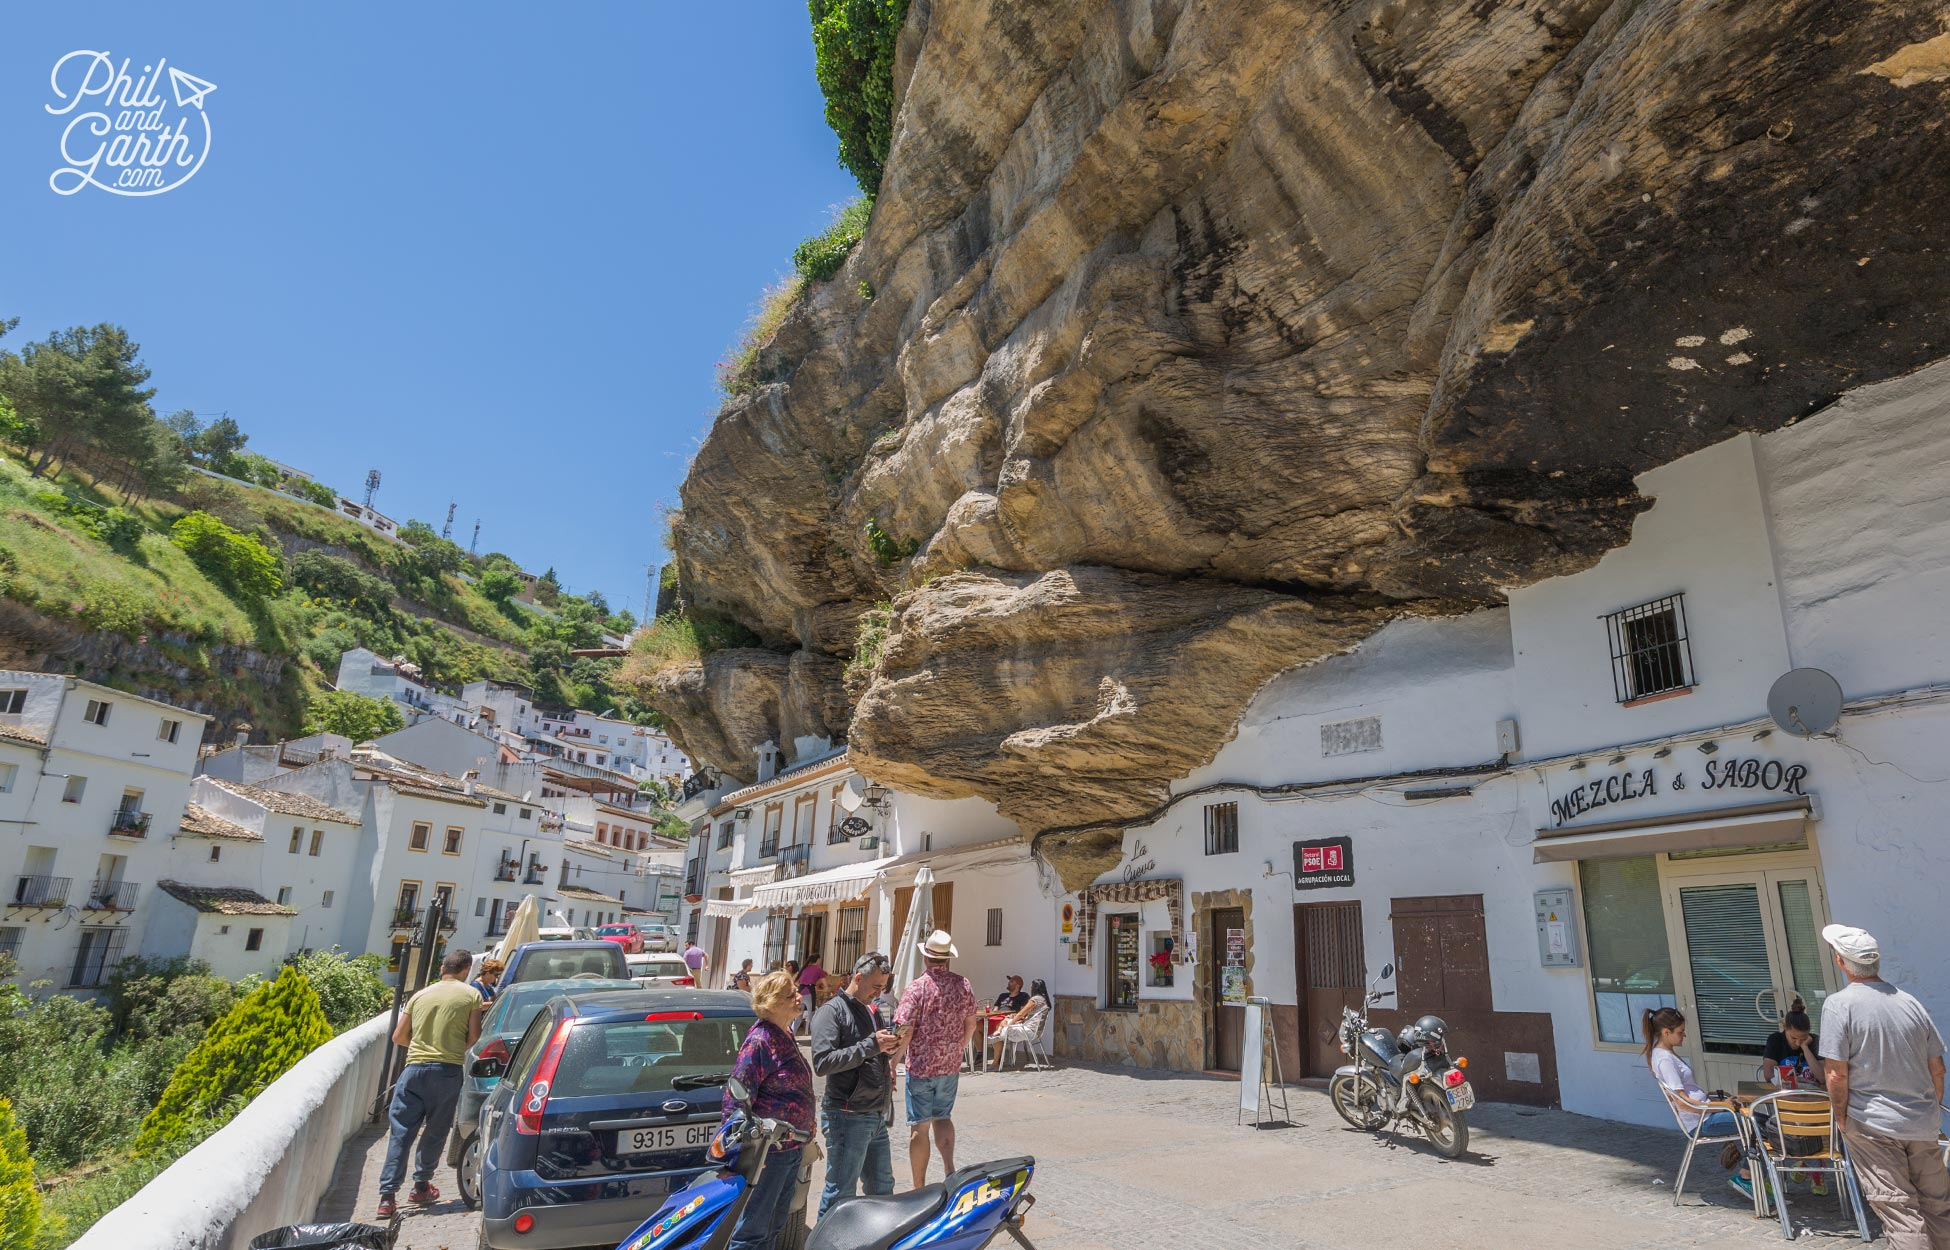 Gravity defying buildings embedded into the rock on 'Sun Street'